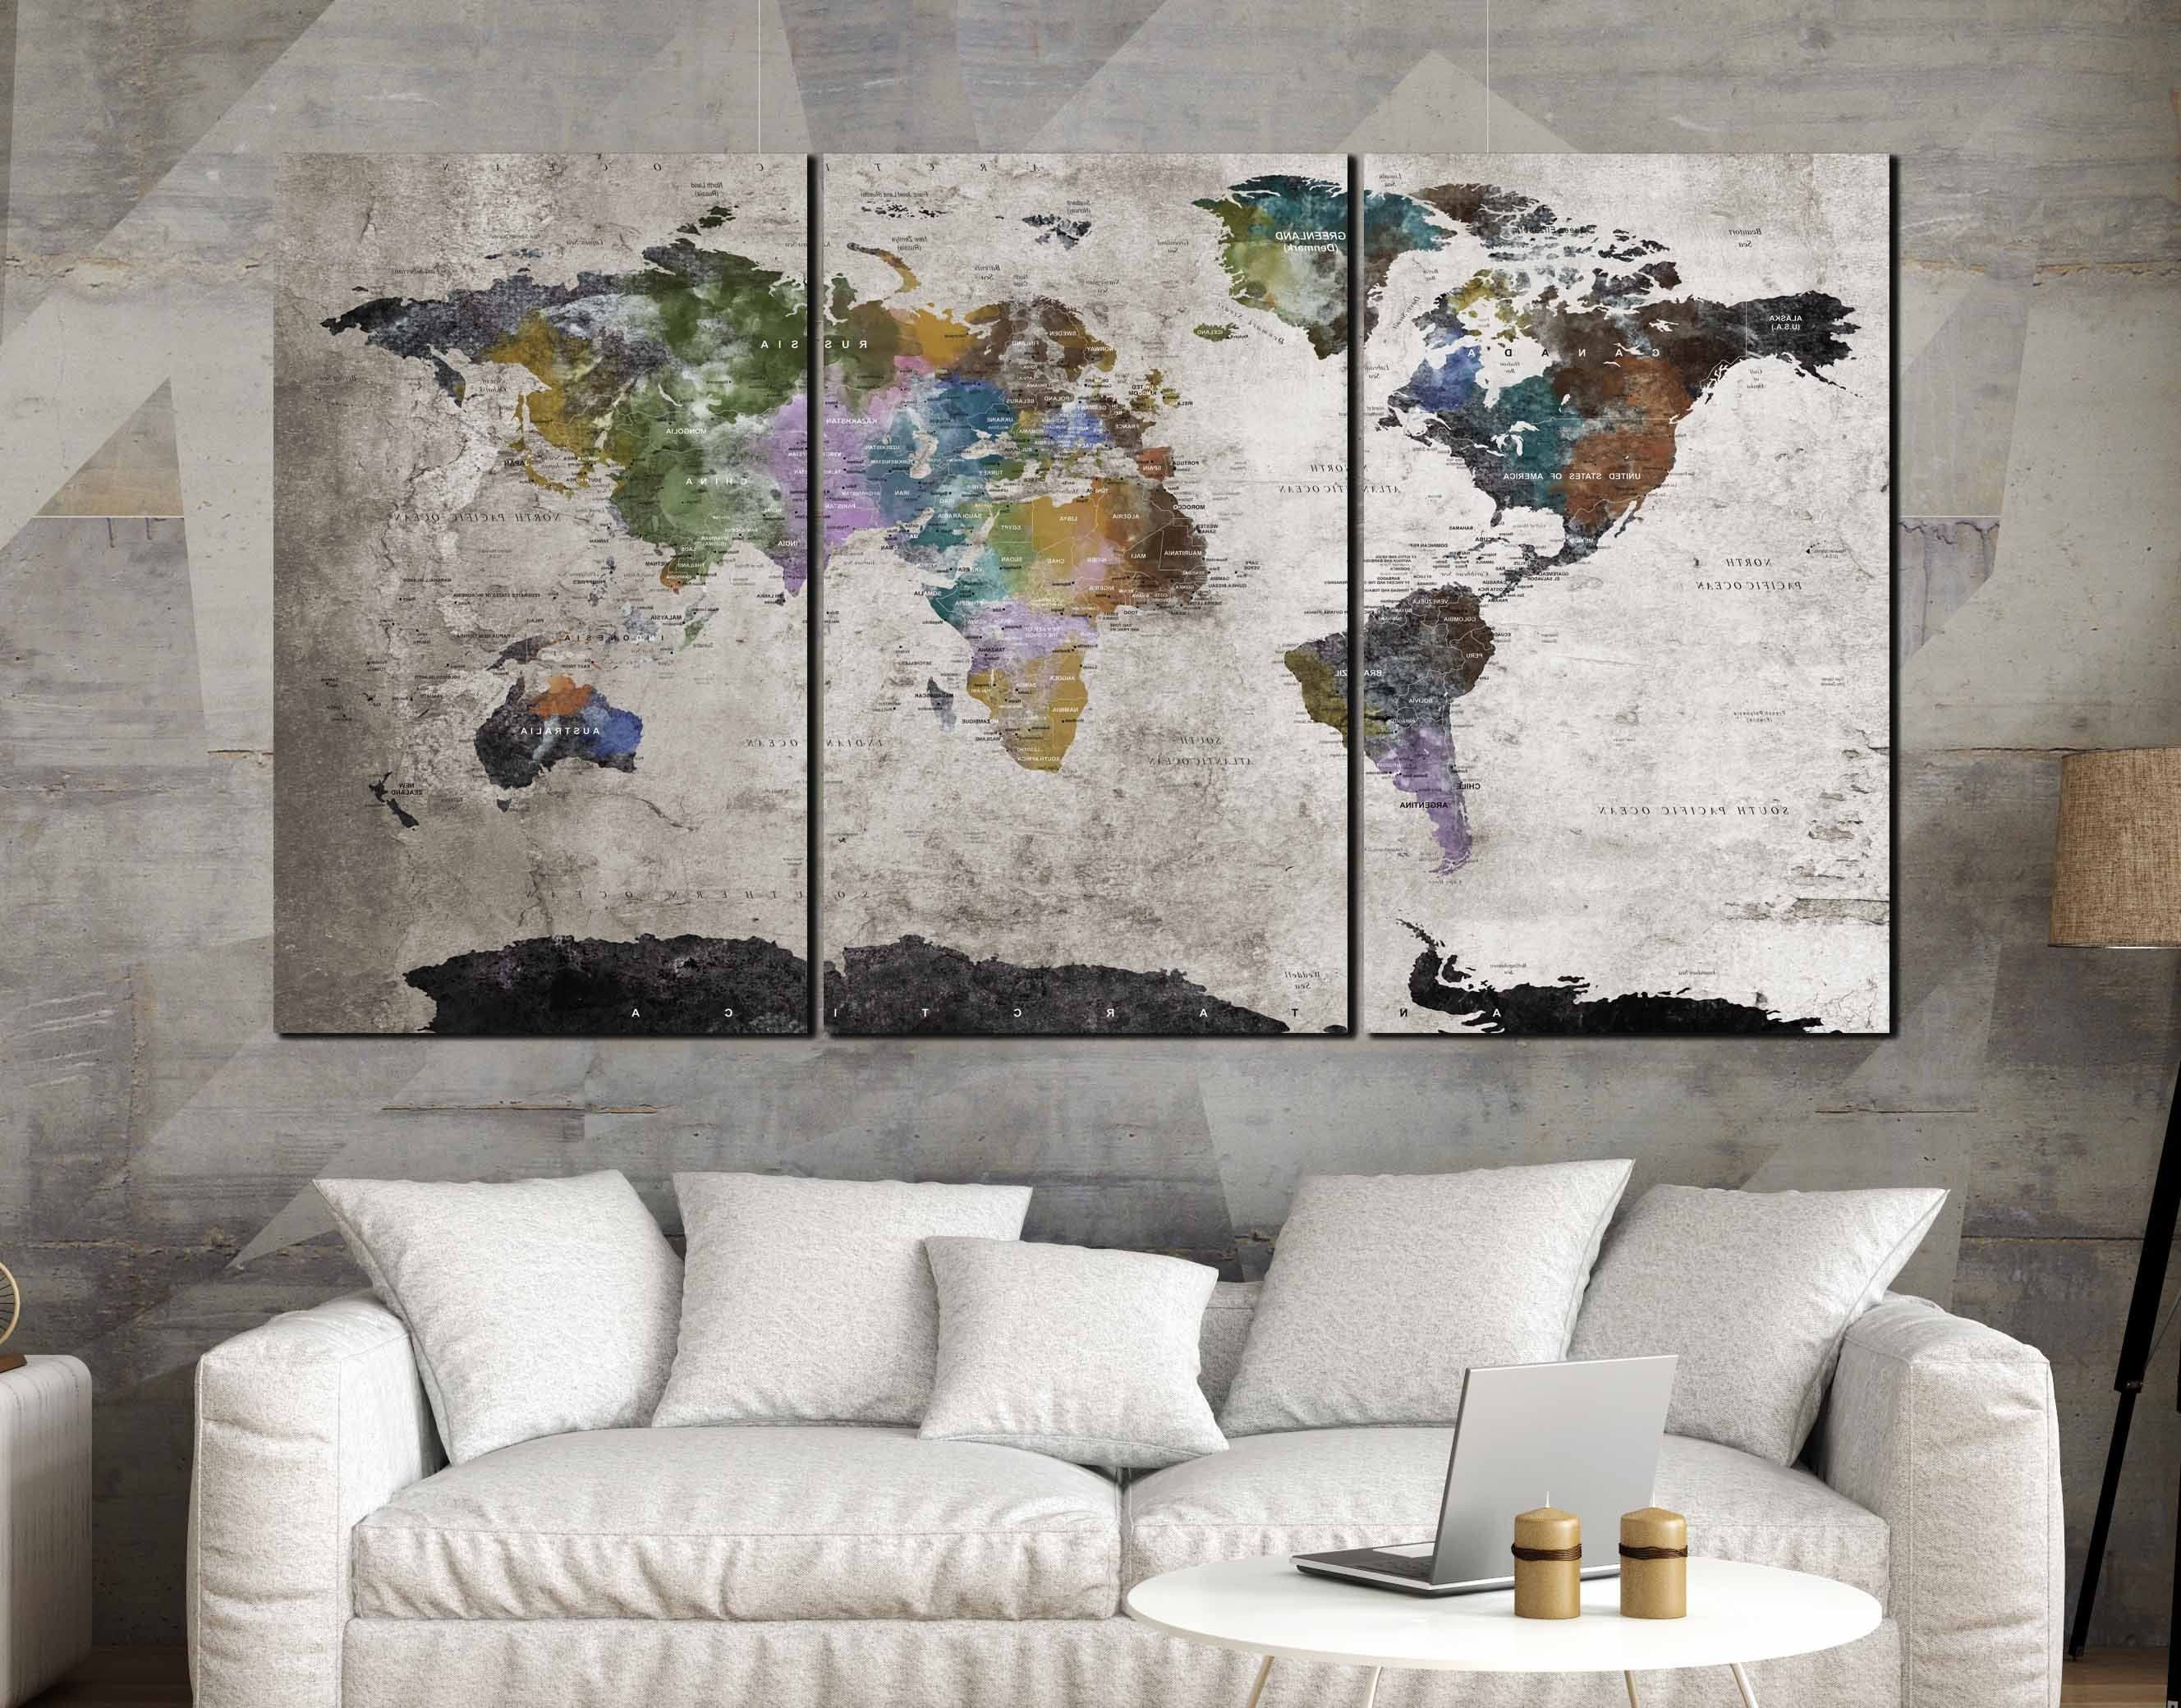 Malaysia Canvas Wall Art With Most Up To Date Highly Detailed World Map Wall Art,large World Map, World Map (View 12 of 15)